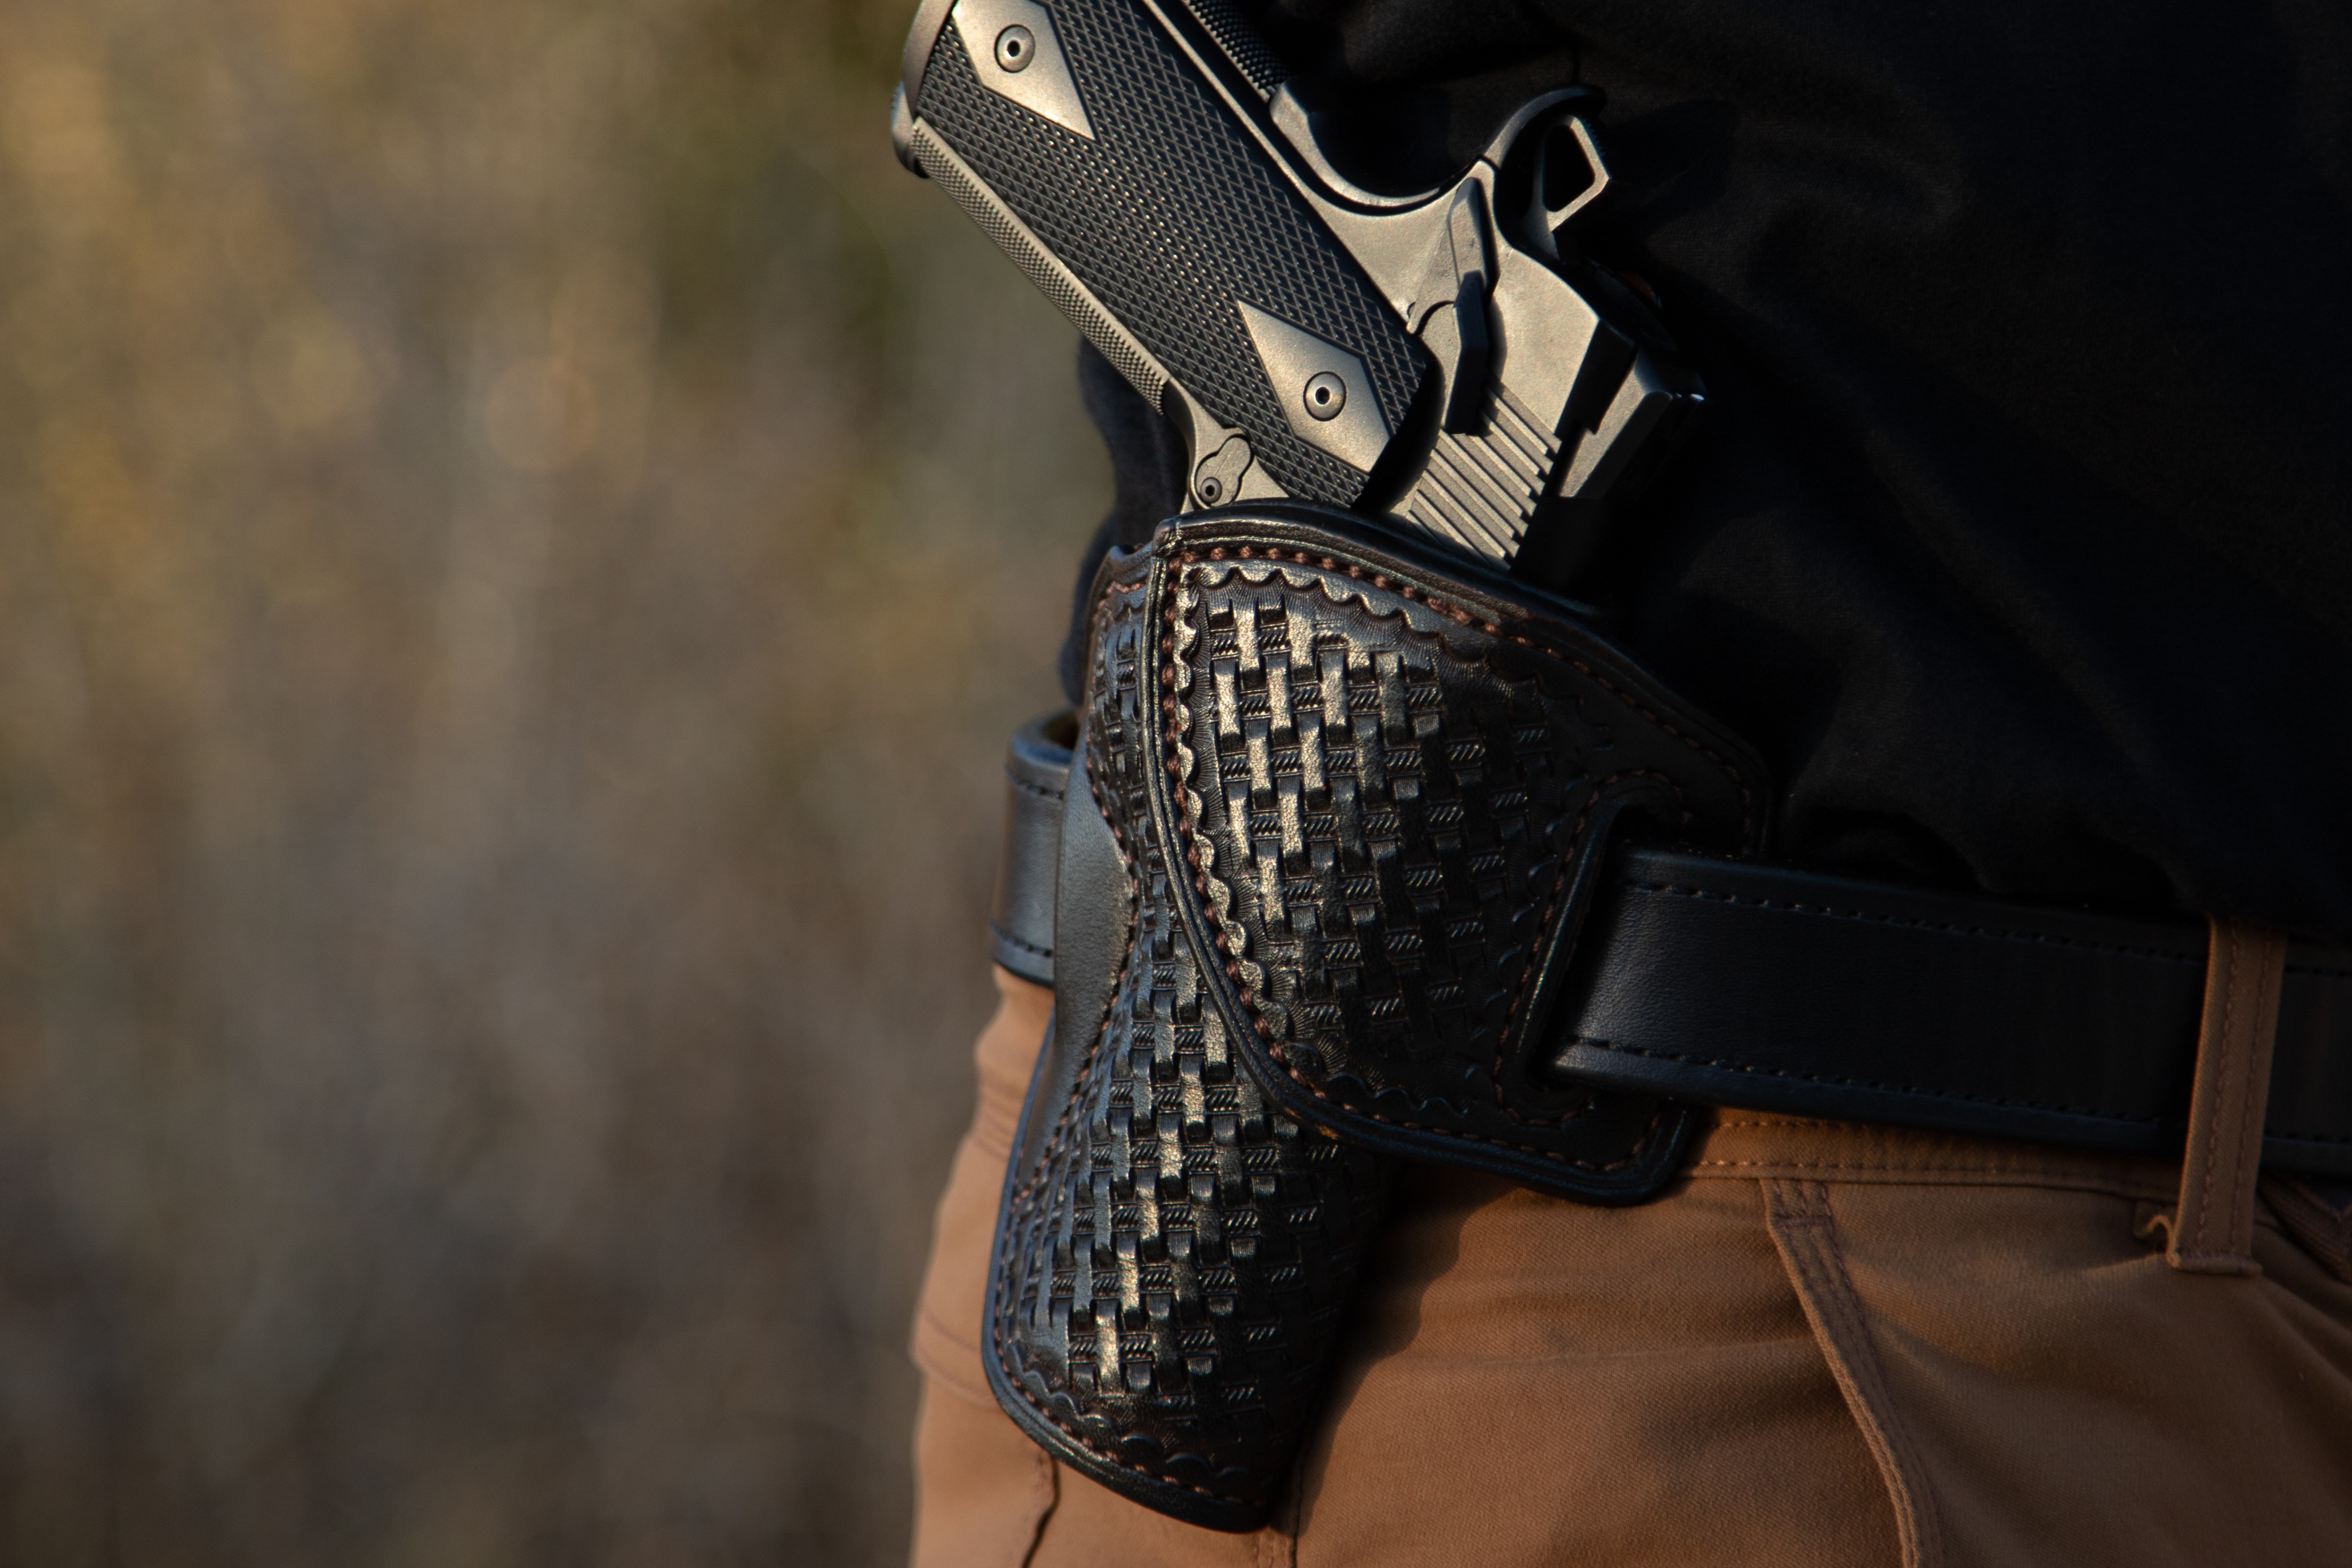 Professional Gun Journalist Reviews Our HF-1 Leather Holster